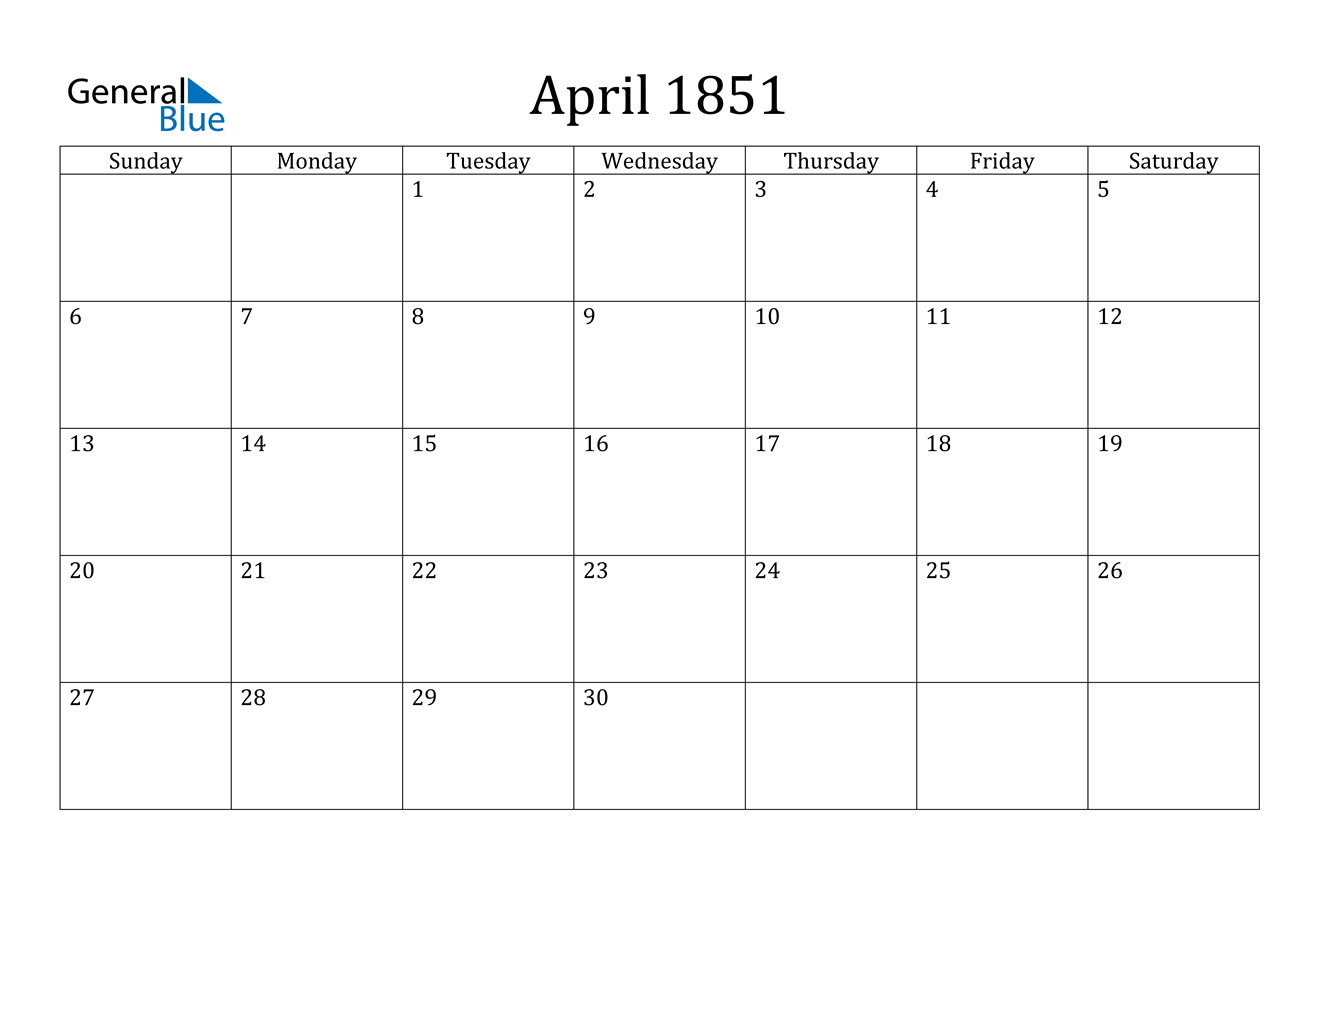 Image of April 1851 Calendar